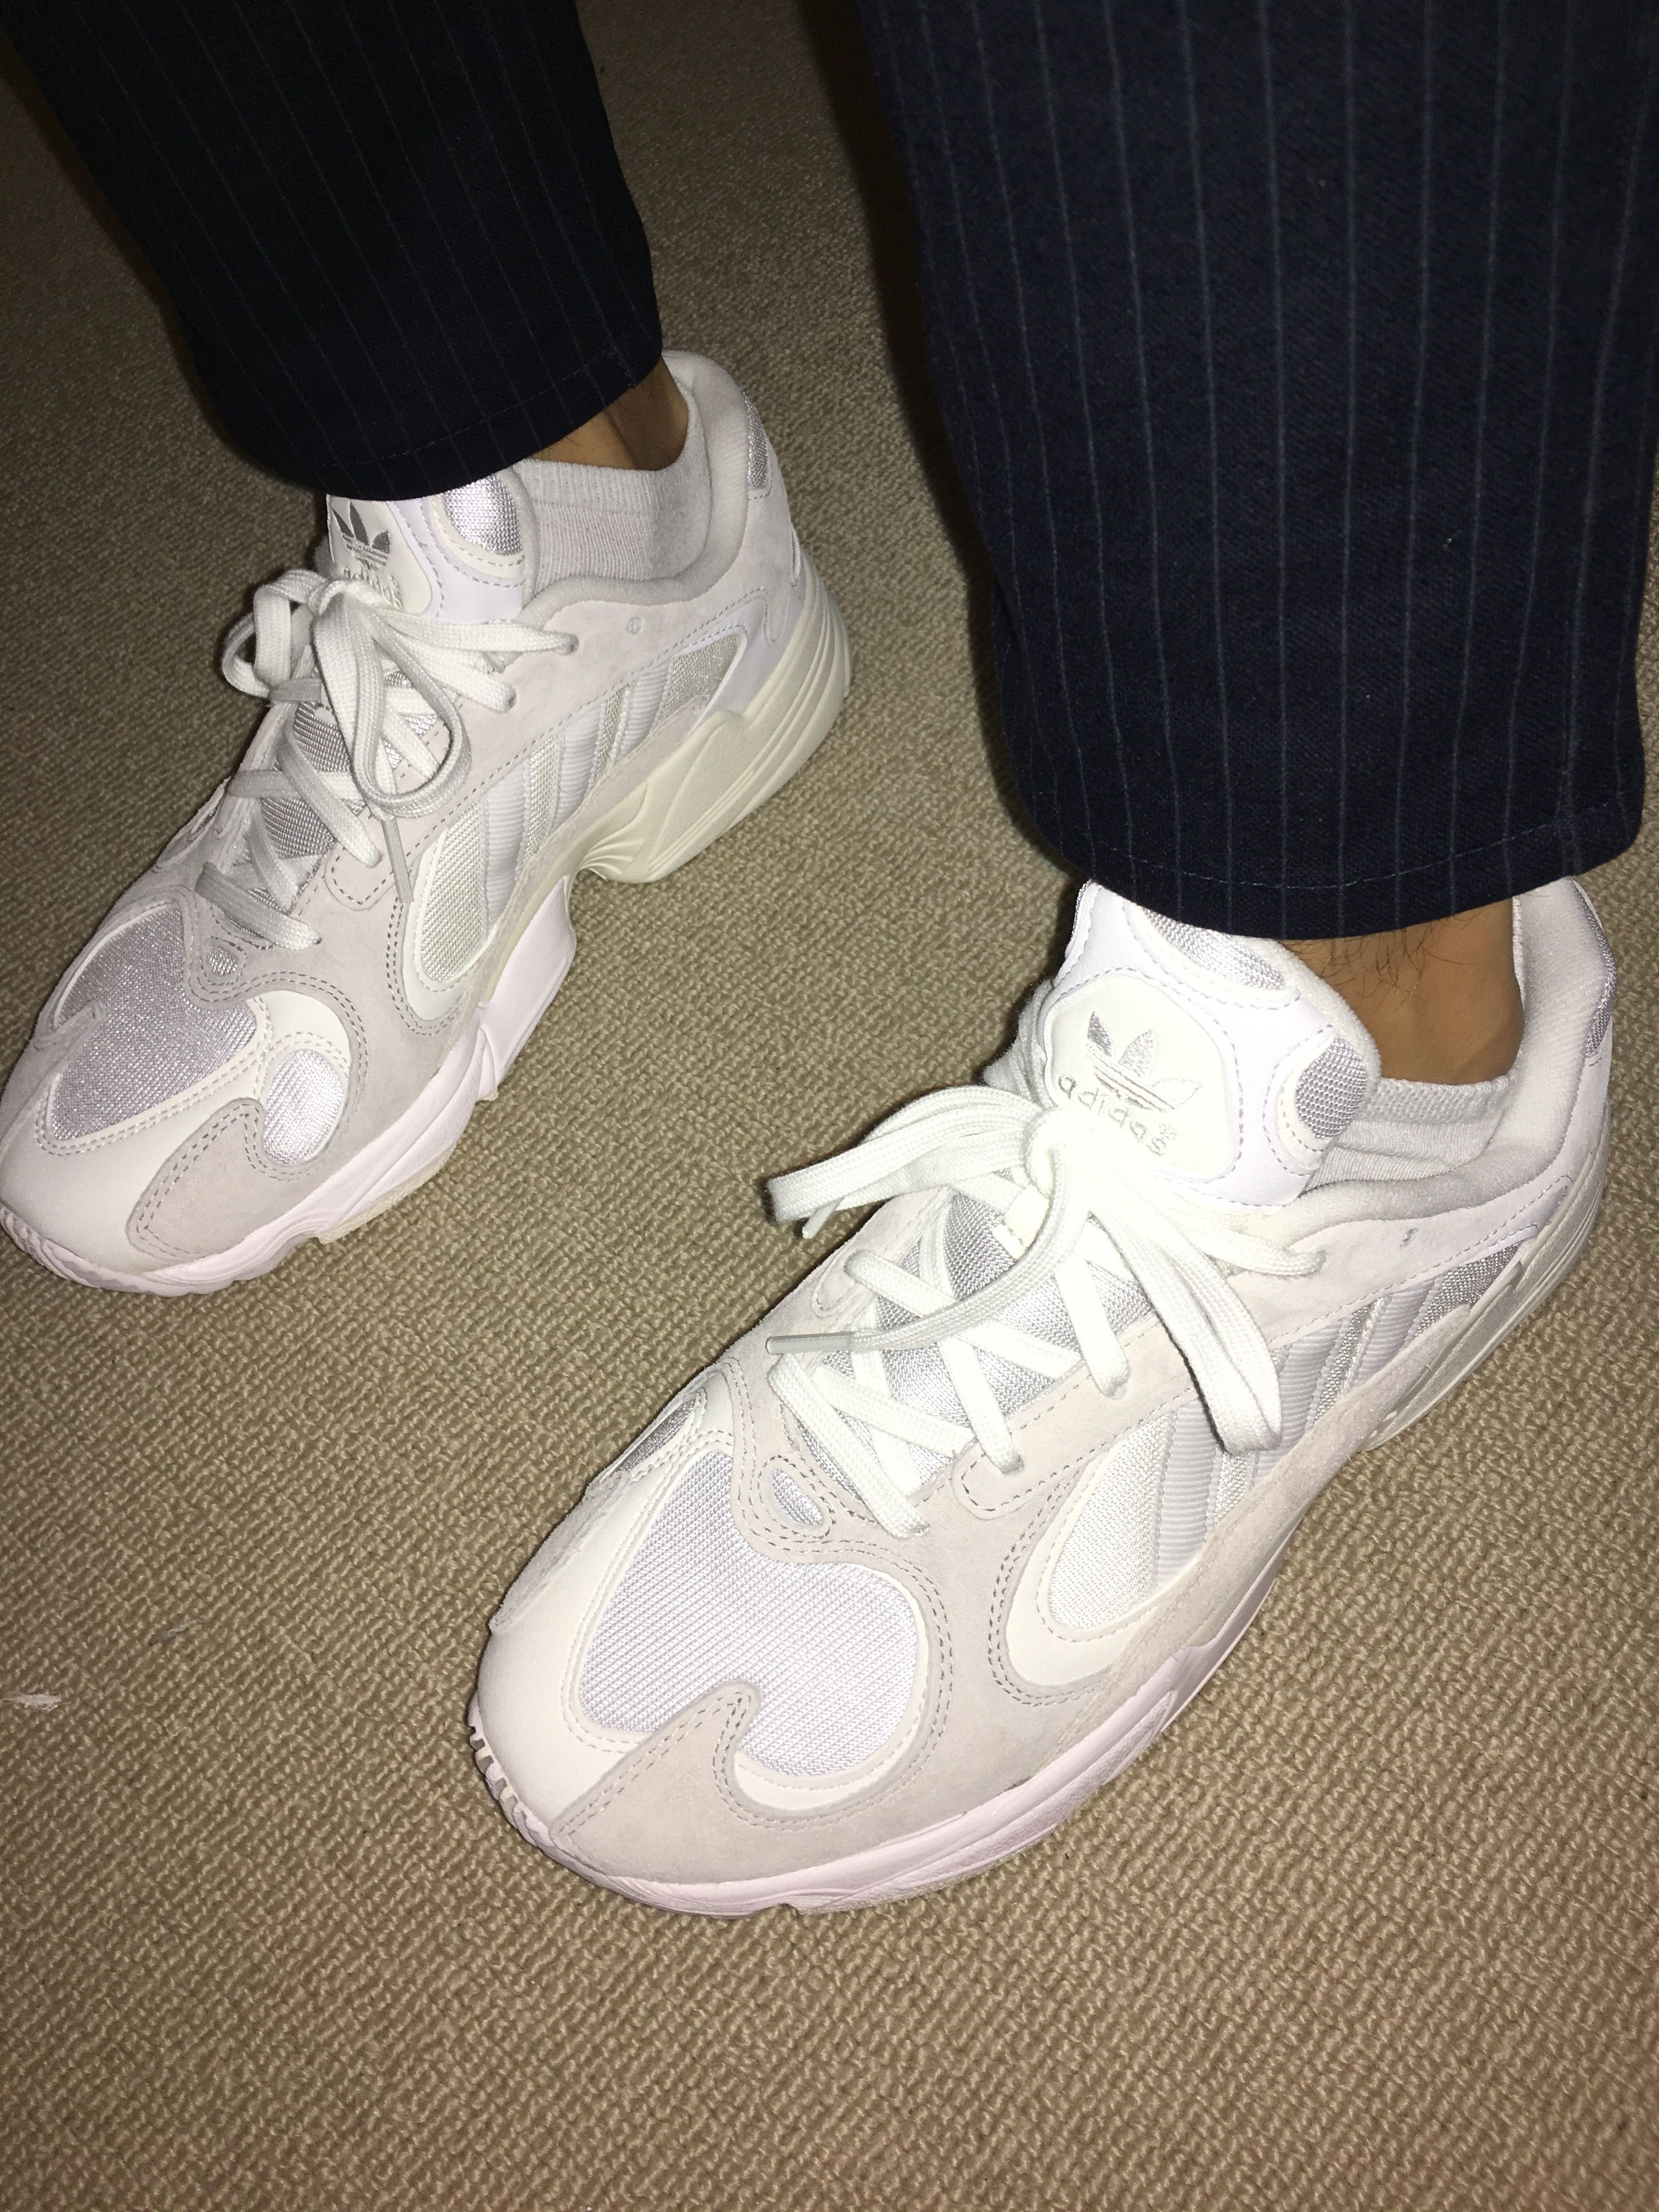 6c23ae5791c0  adidas  yung1  sneakers  mrporter. Find this Pin and more on Kicks by  Sunnyboi.